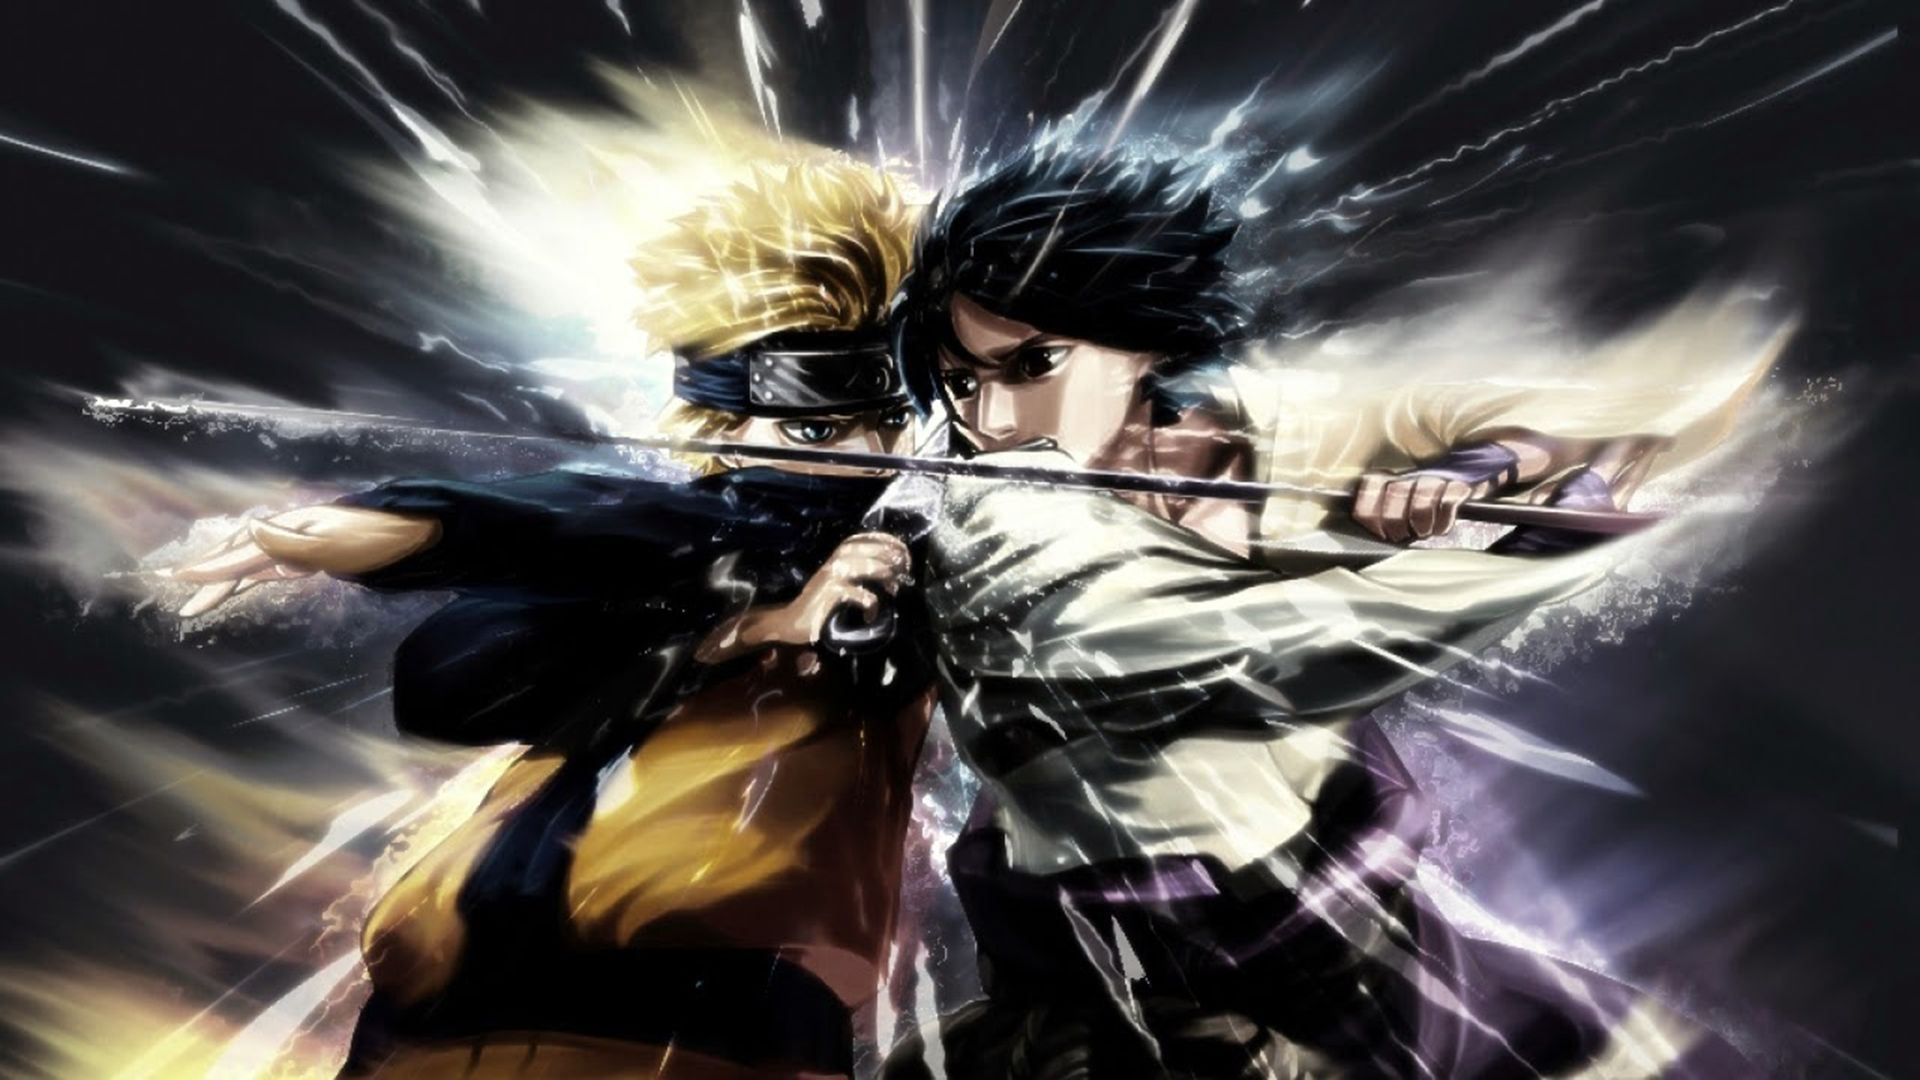 Naruto Vs Sasuke 1920x1080 R Wallpapers Naruto Vs Sasuke Wallpaper Naruto Shippuden Naruto And Sasuke Wallpaper